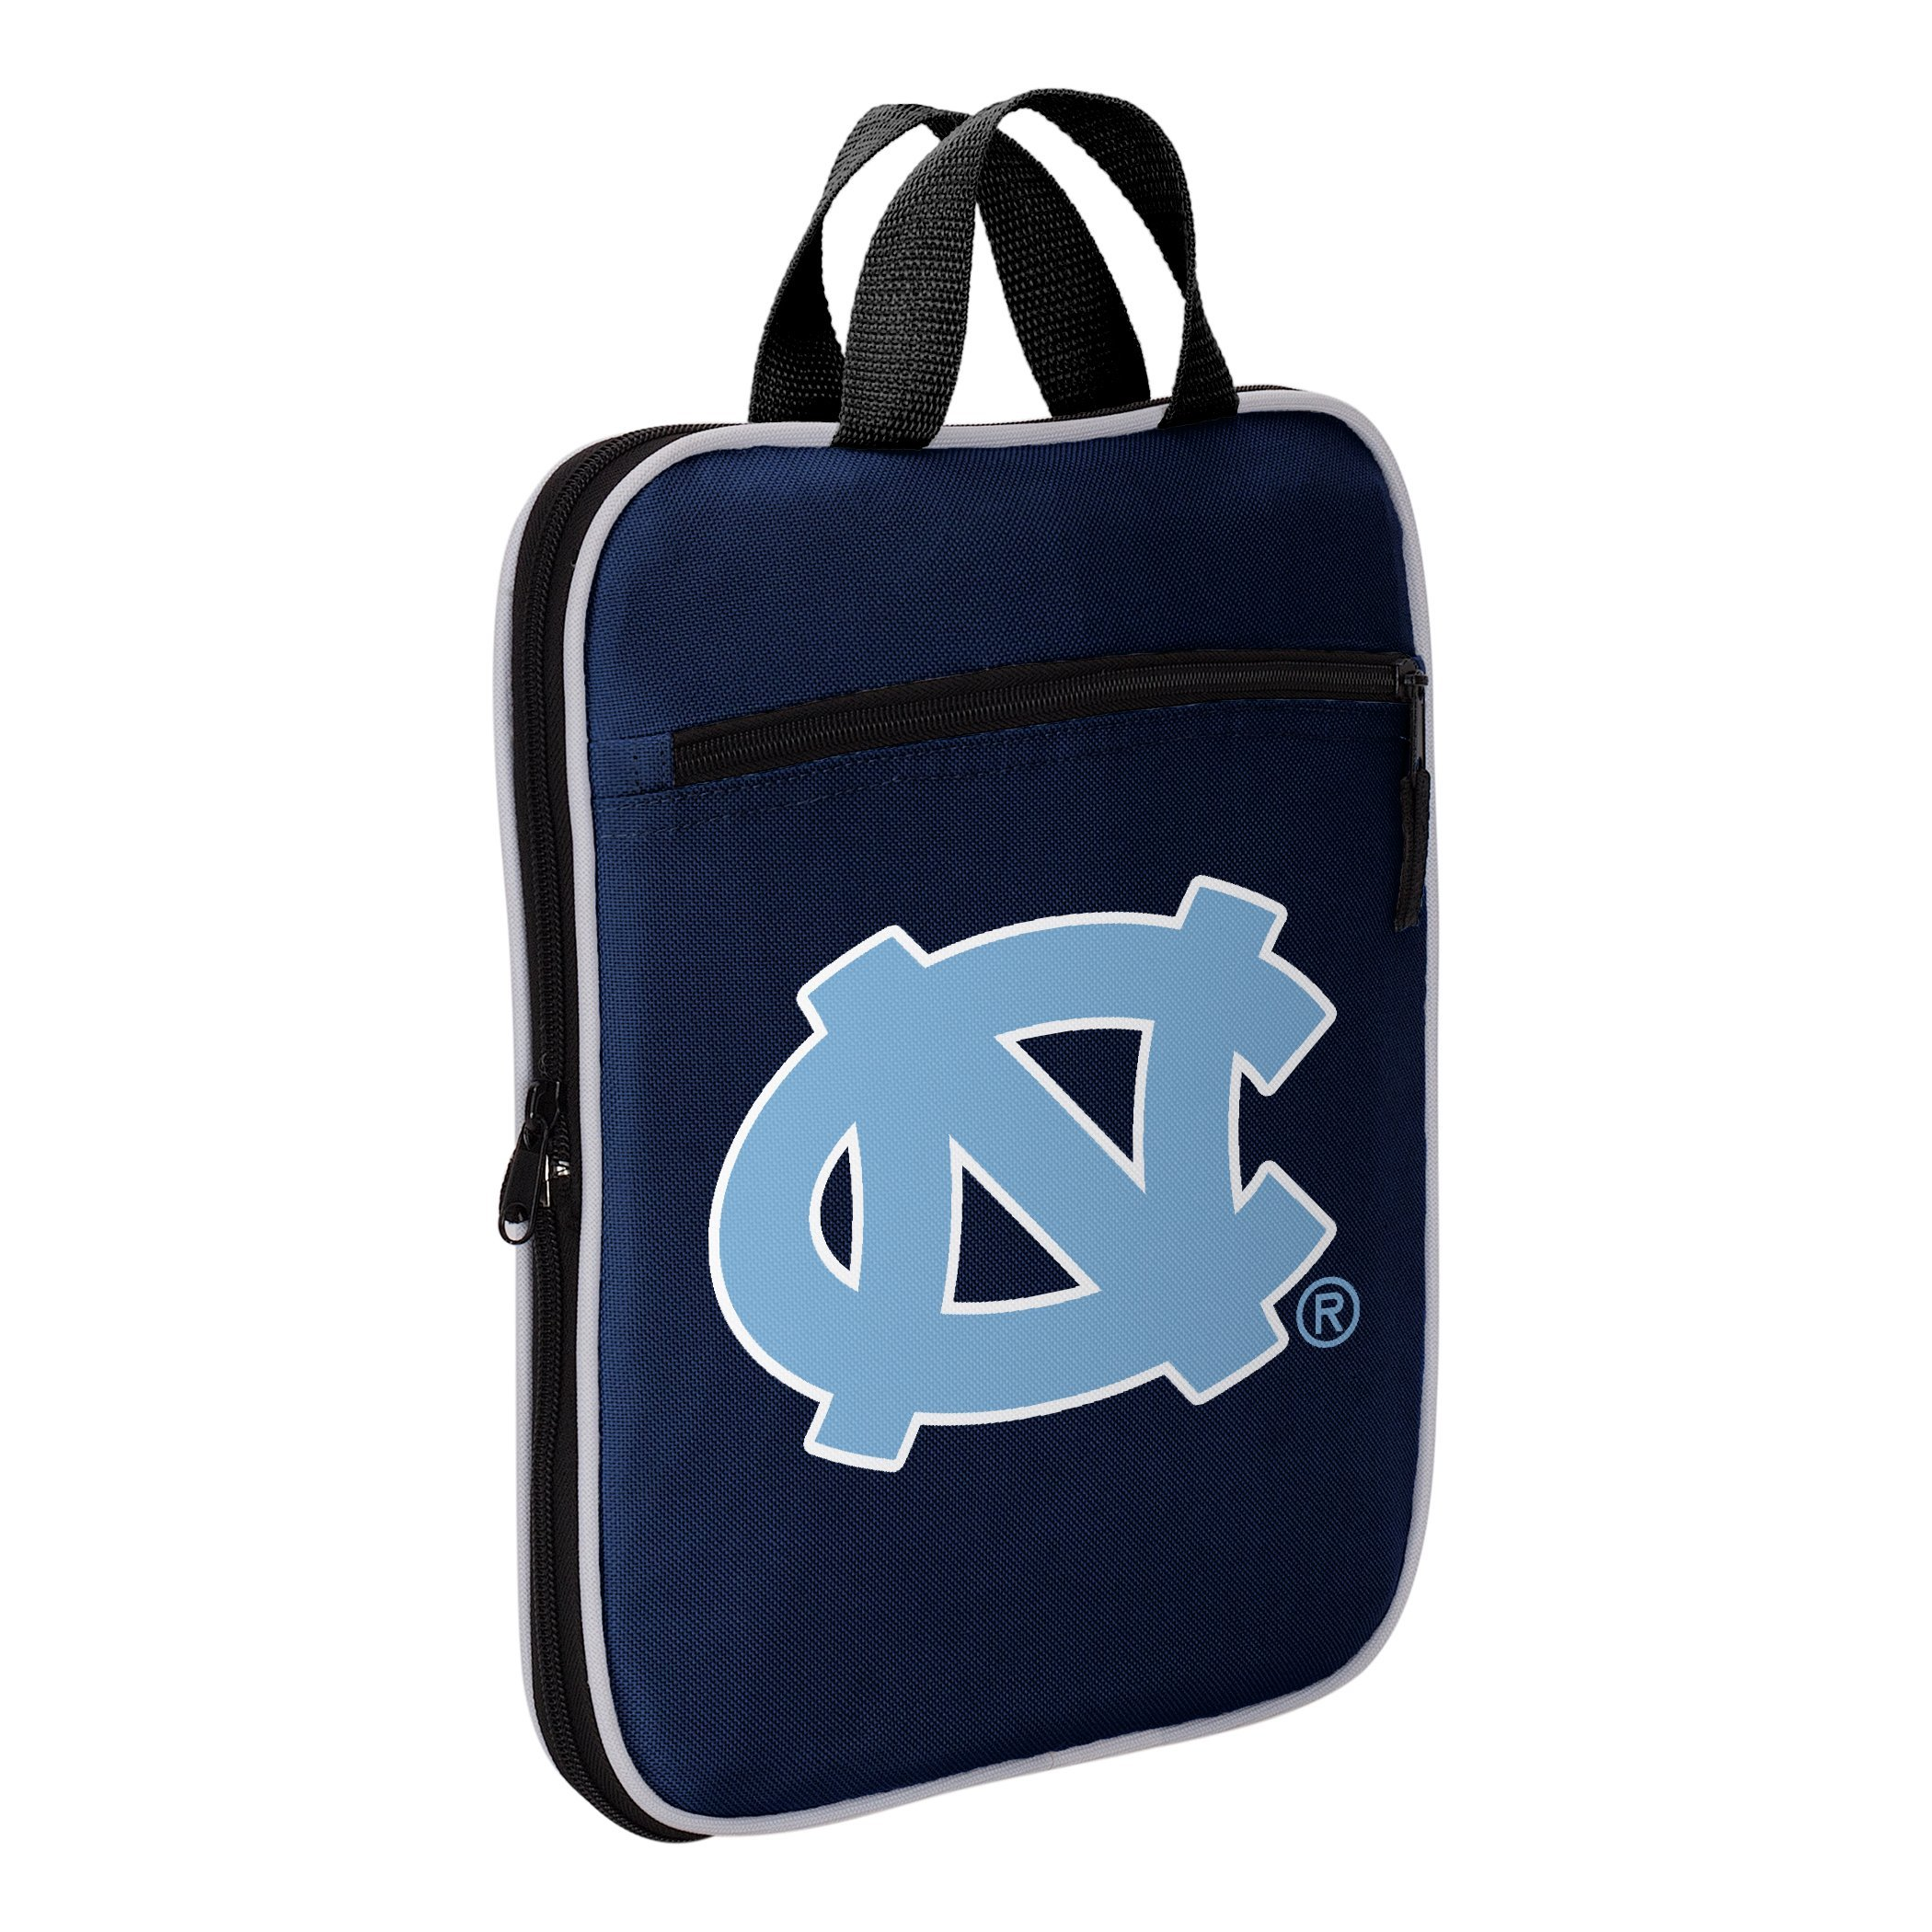 Officially Licensed NCAA North Carolina Tar Heels Steal Duffel Bag by The Northwest Company (Image #4)